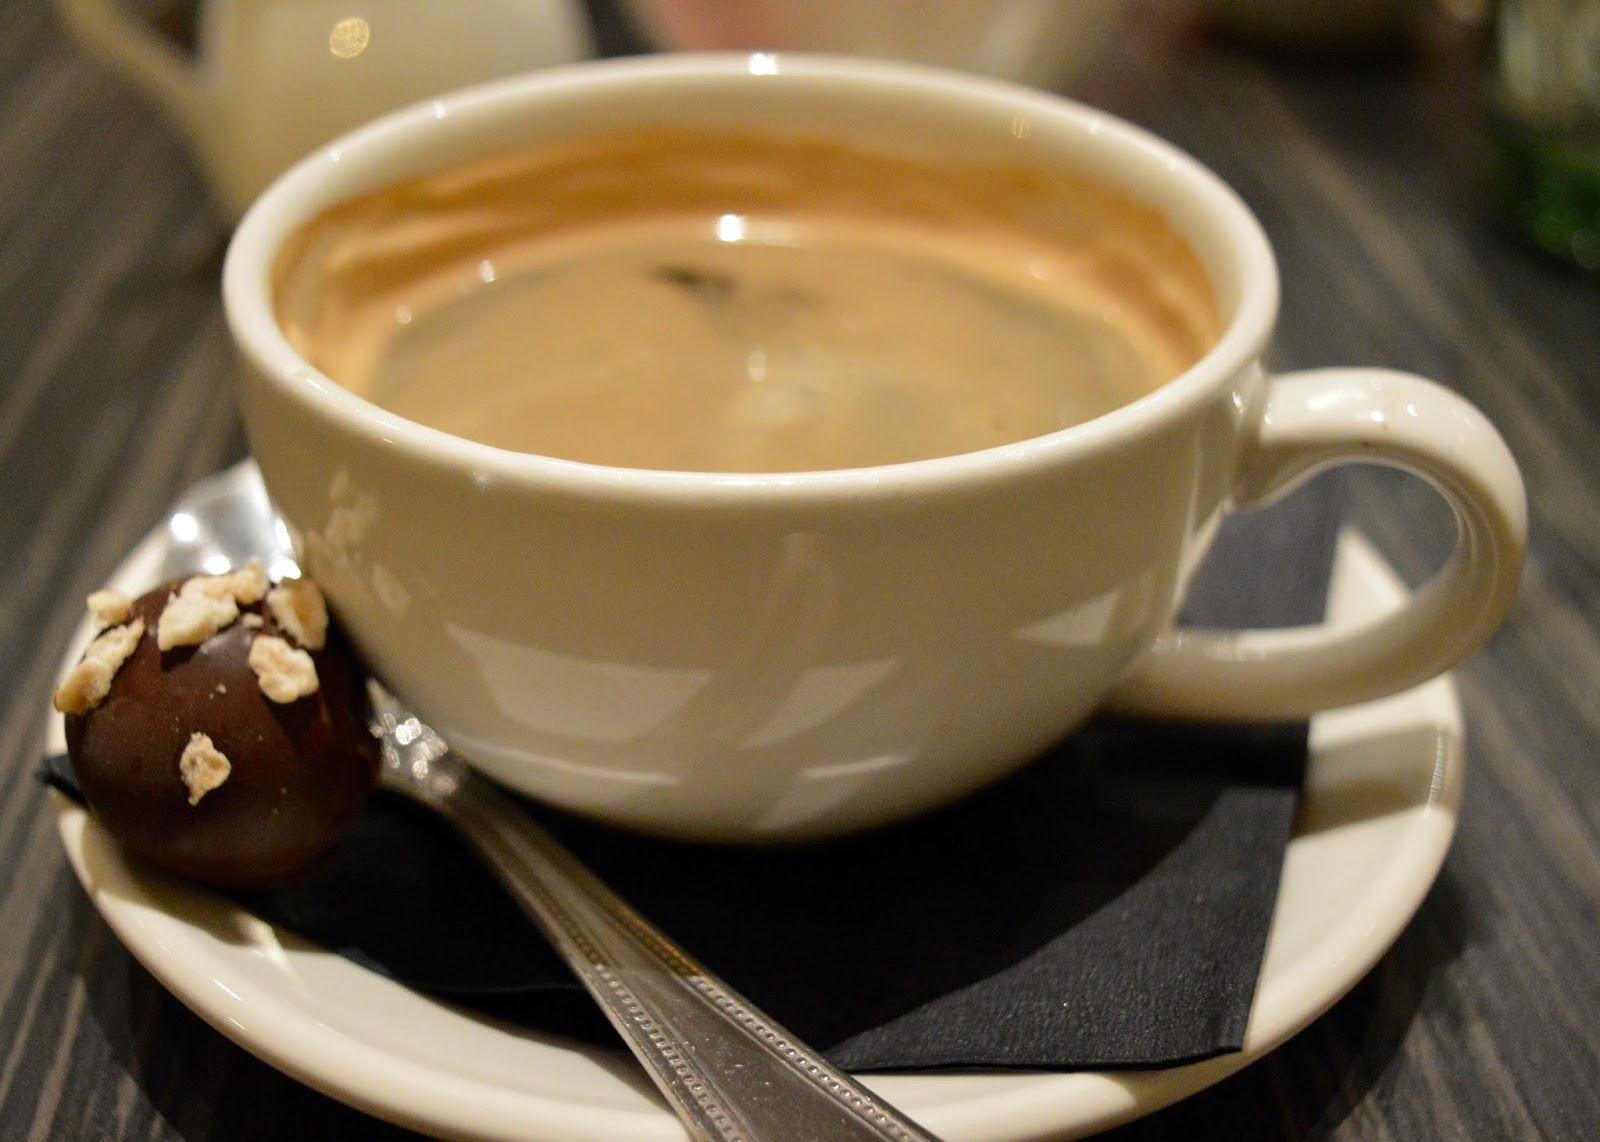 The Brasserie at the Grand Hotel, Tynemouth | New Tasting Menu review  - coffee and chocolates